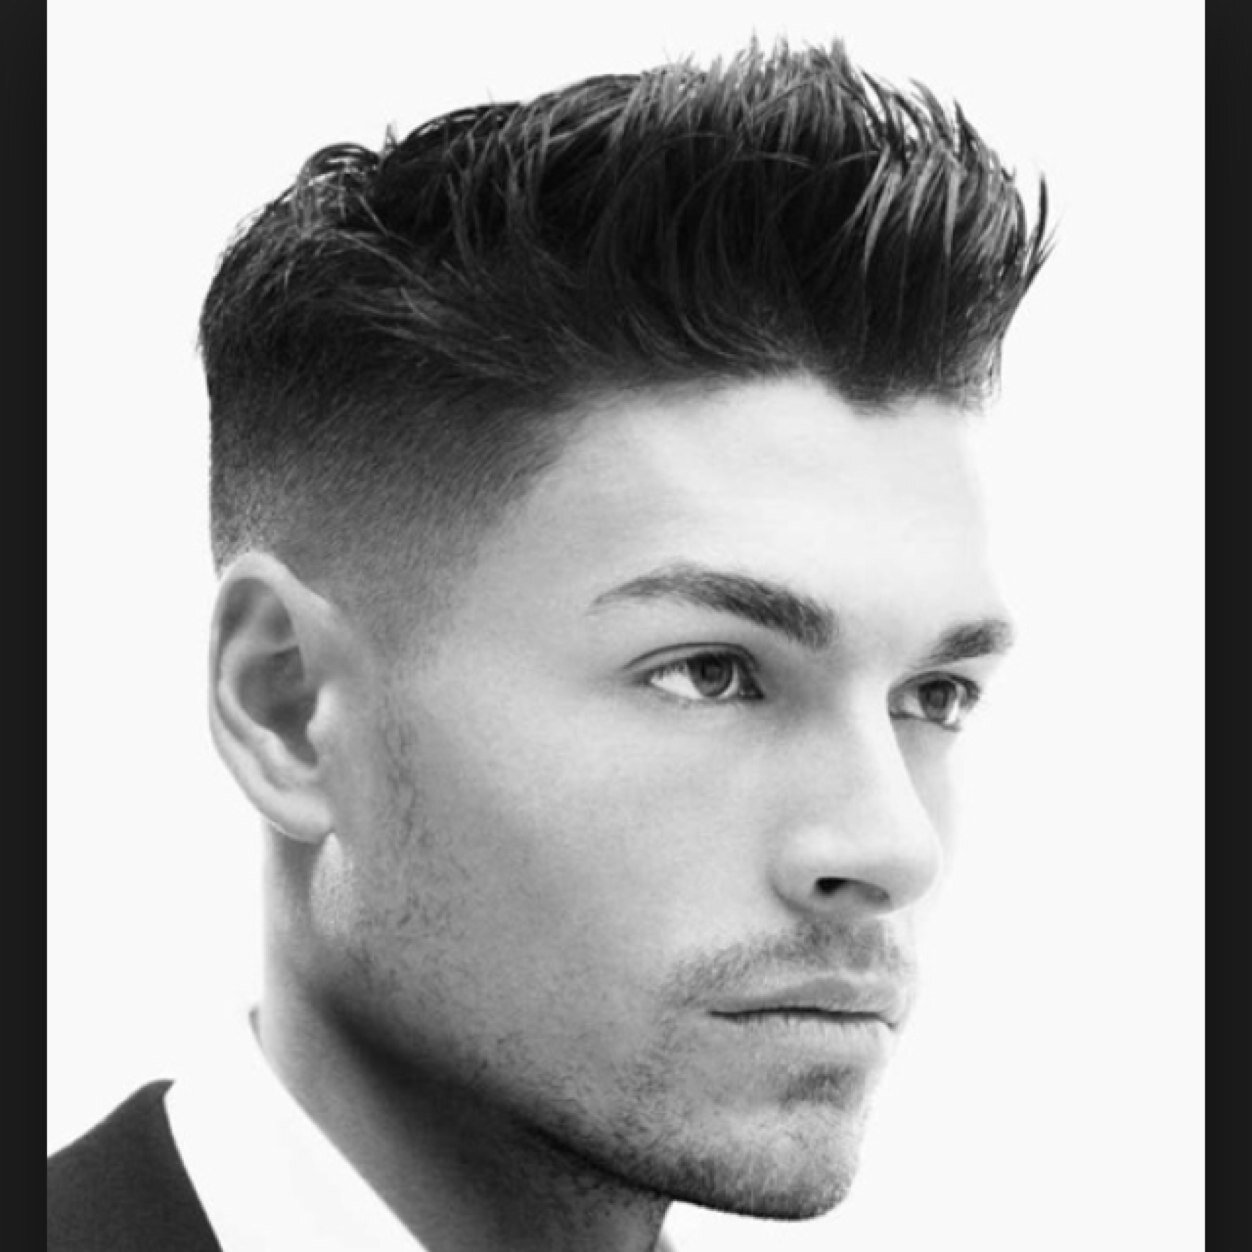 7 features of vanilla ice hairstyle that make everyone love it 7 features of vanilla ice hairstyle that make everyone love it vanilla ice hairstyle natural hairstyles theworldtreetop winobraniefo Image collections